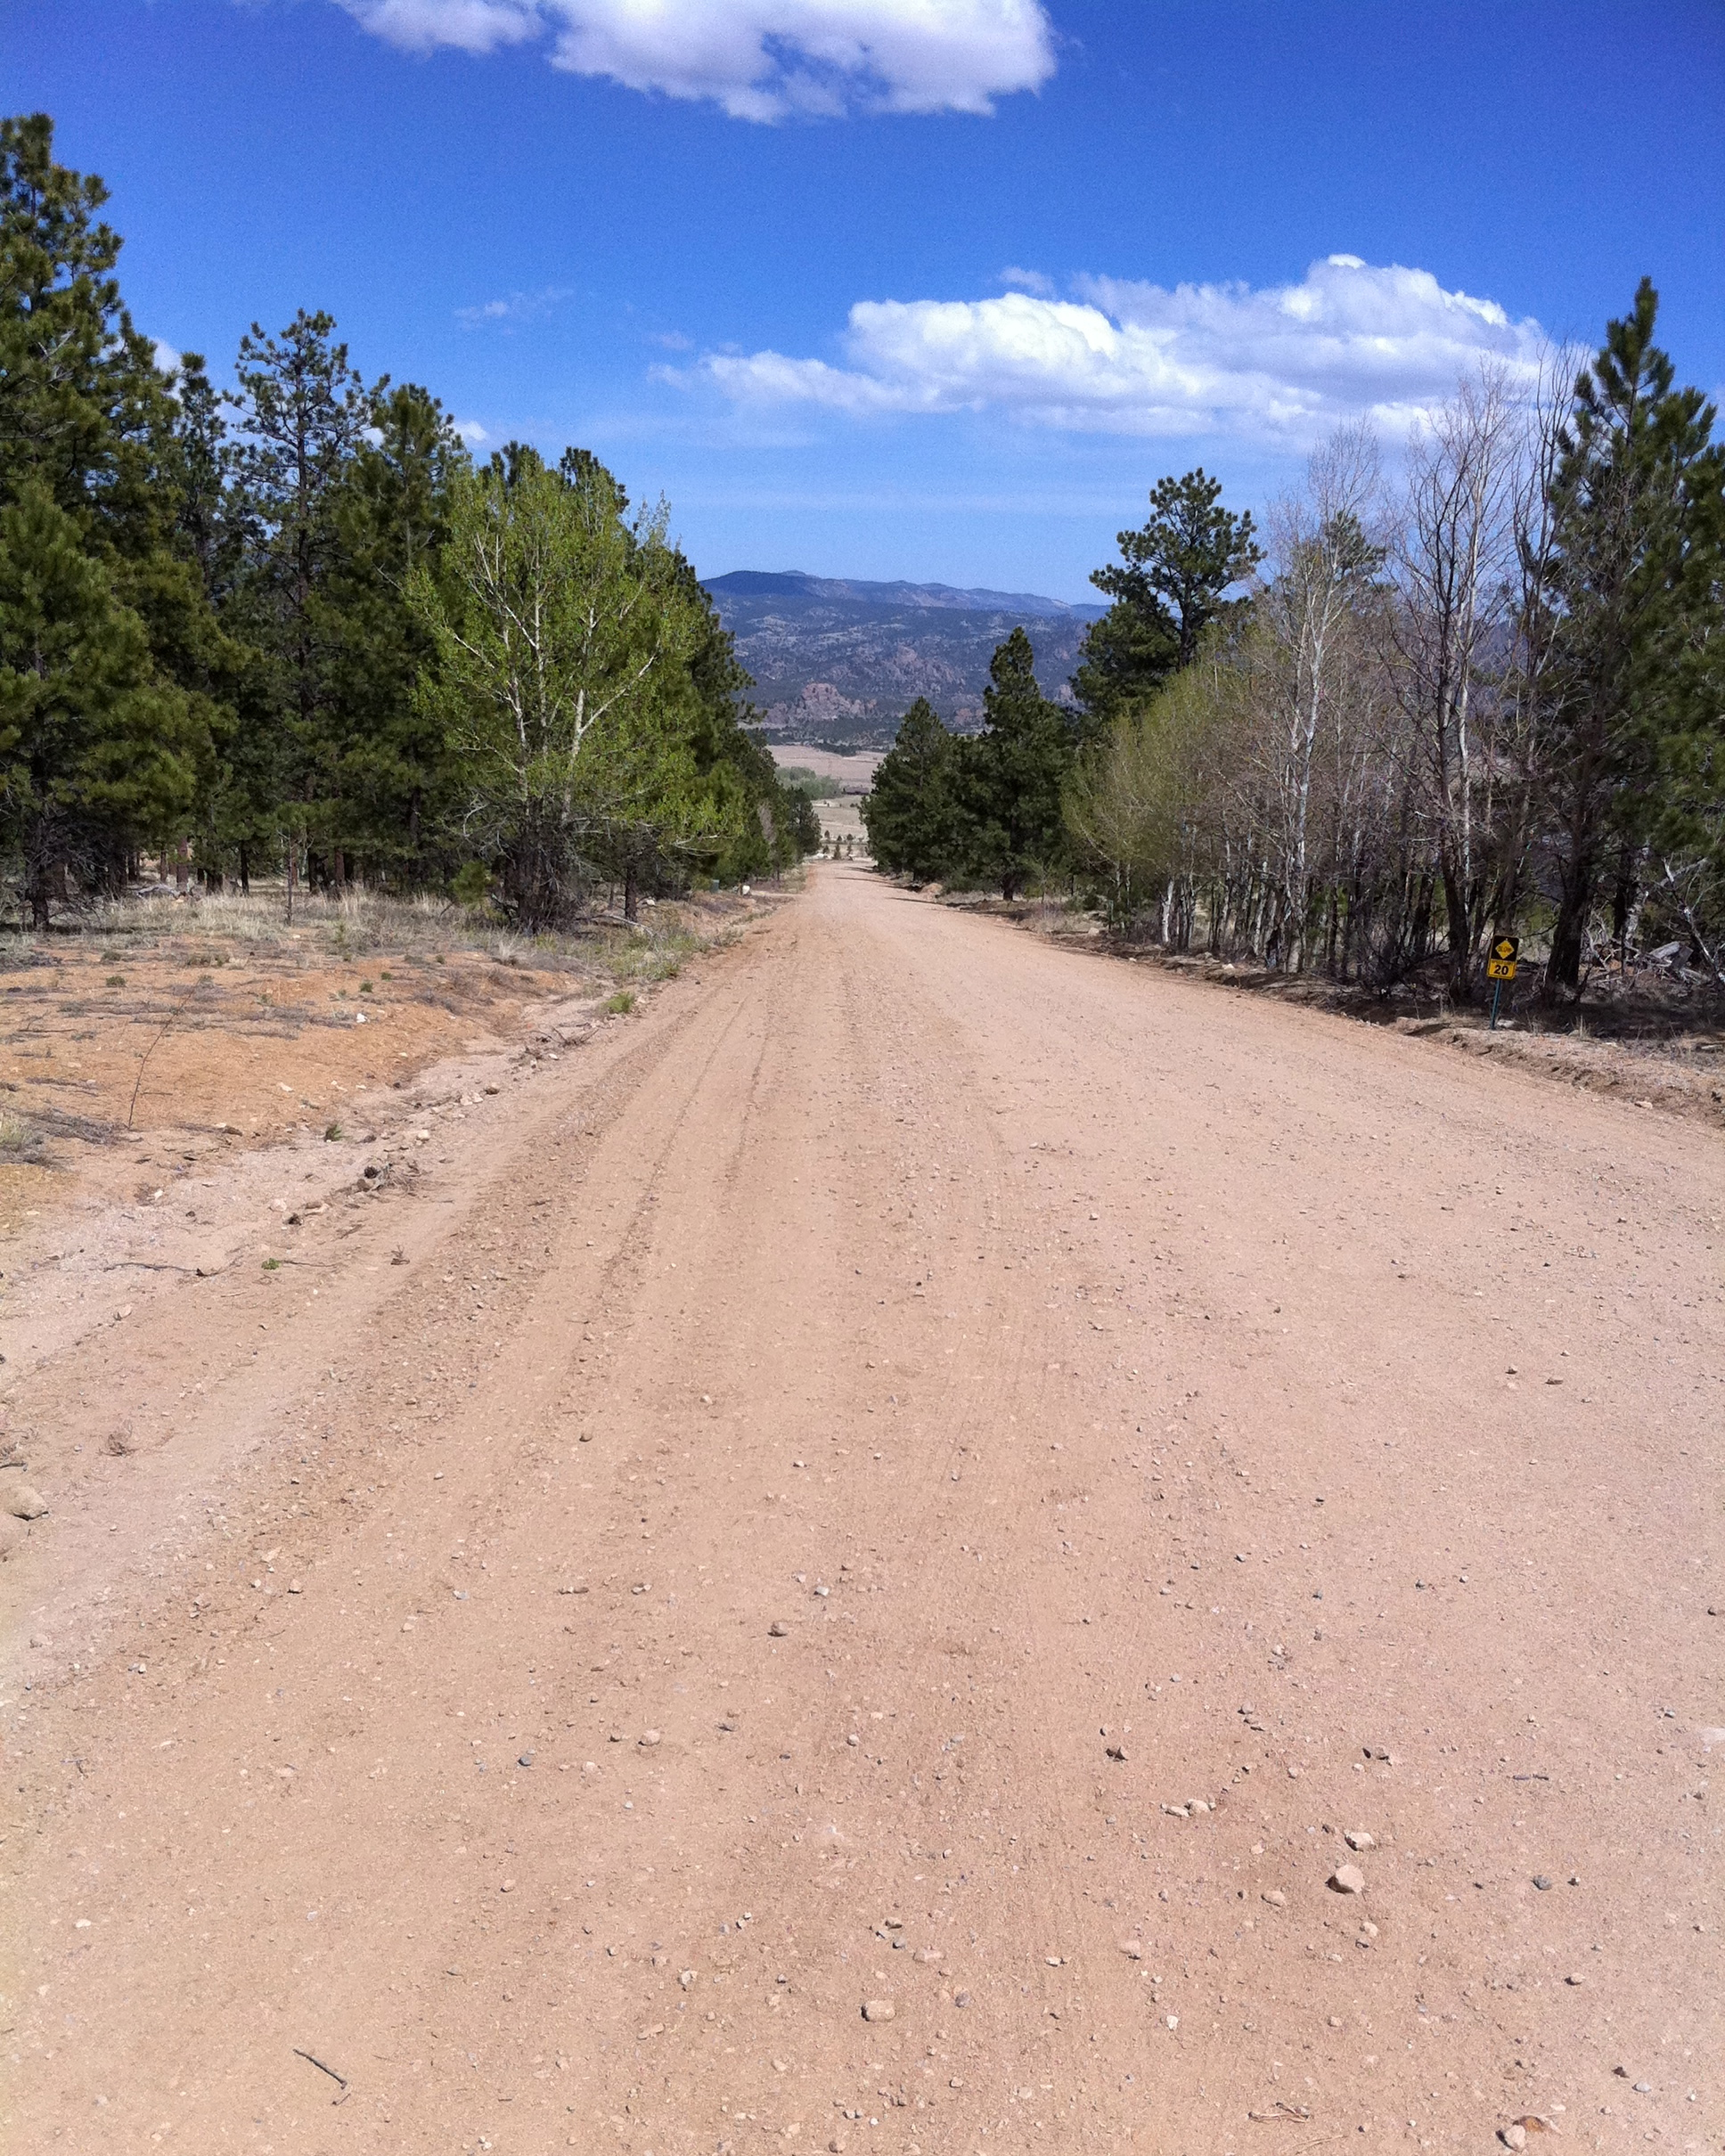 This is a look down the dirt road. We walked up the road.